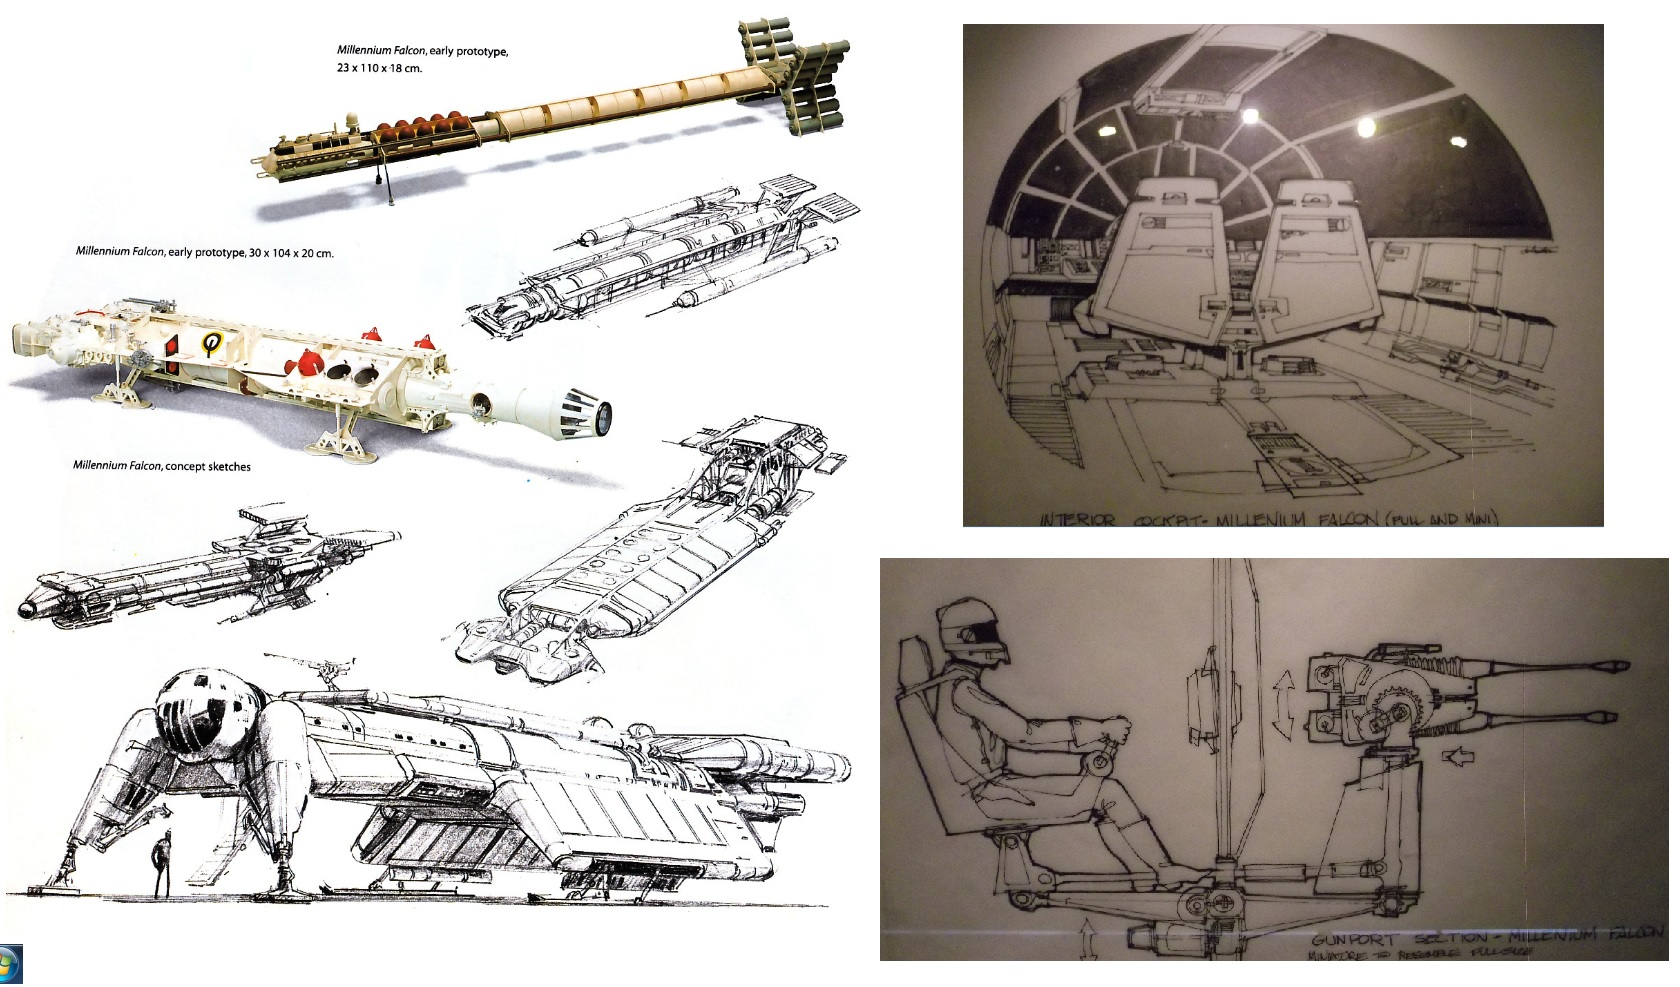 1680x987 The Millennium Falcon From Concept To Screen